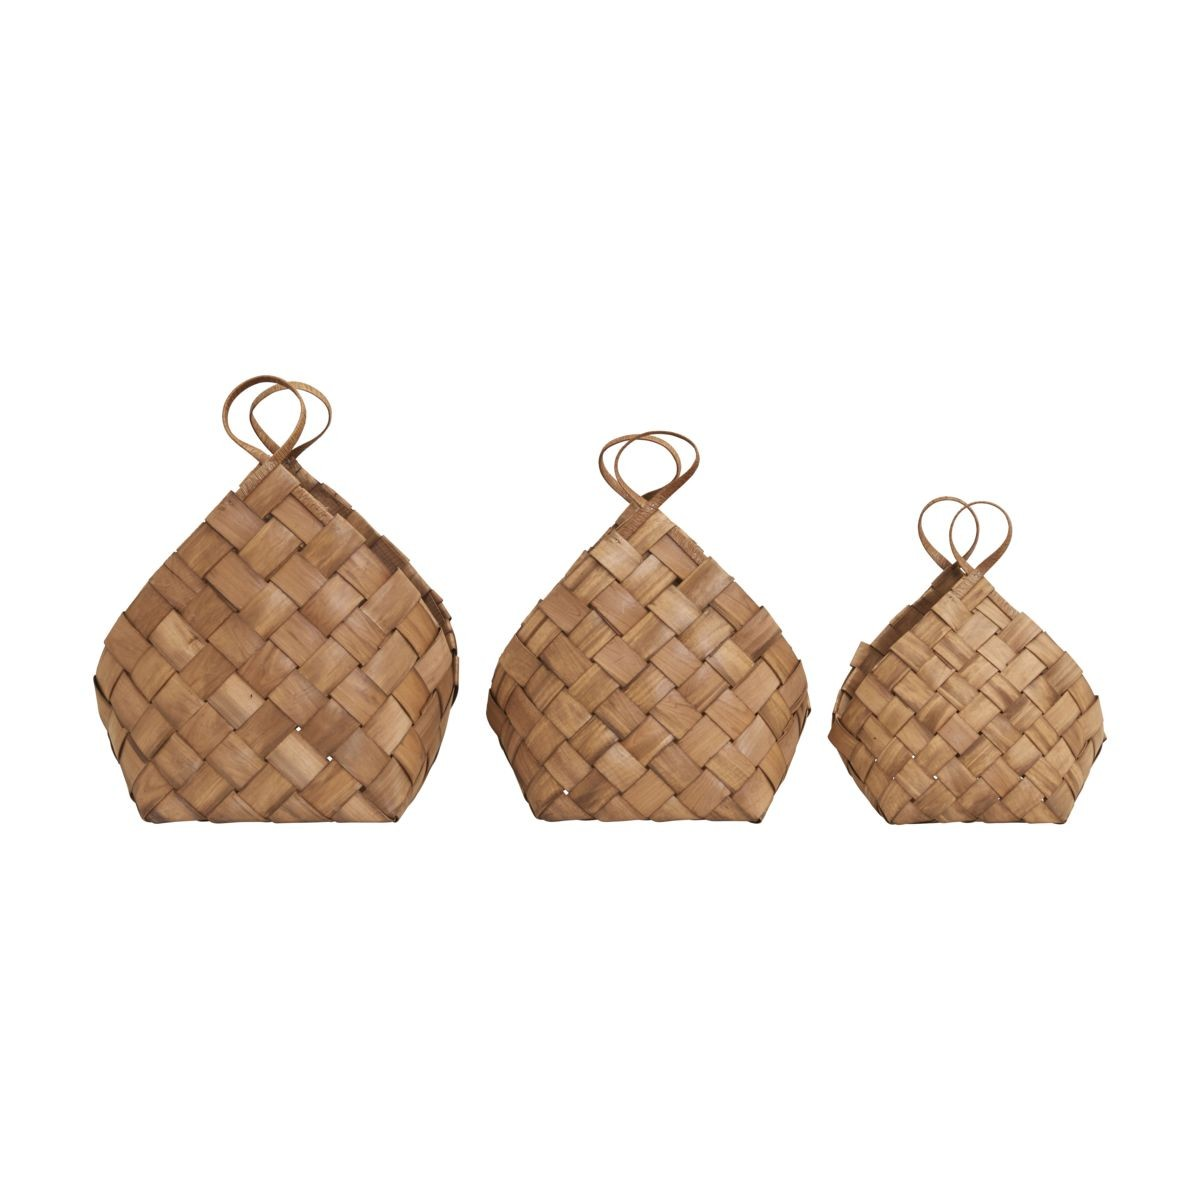 House Doctor Decke Conical Korb Set